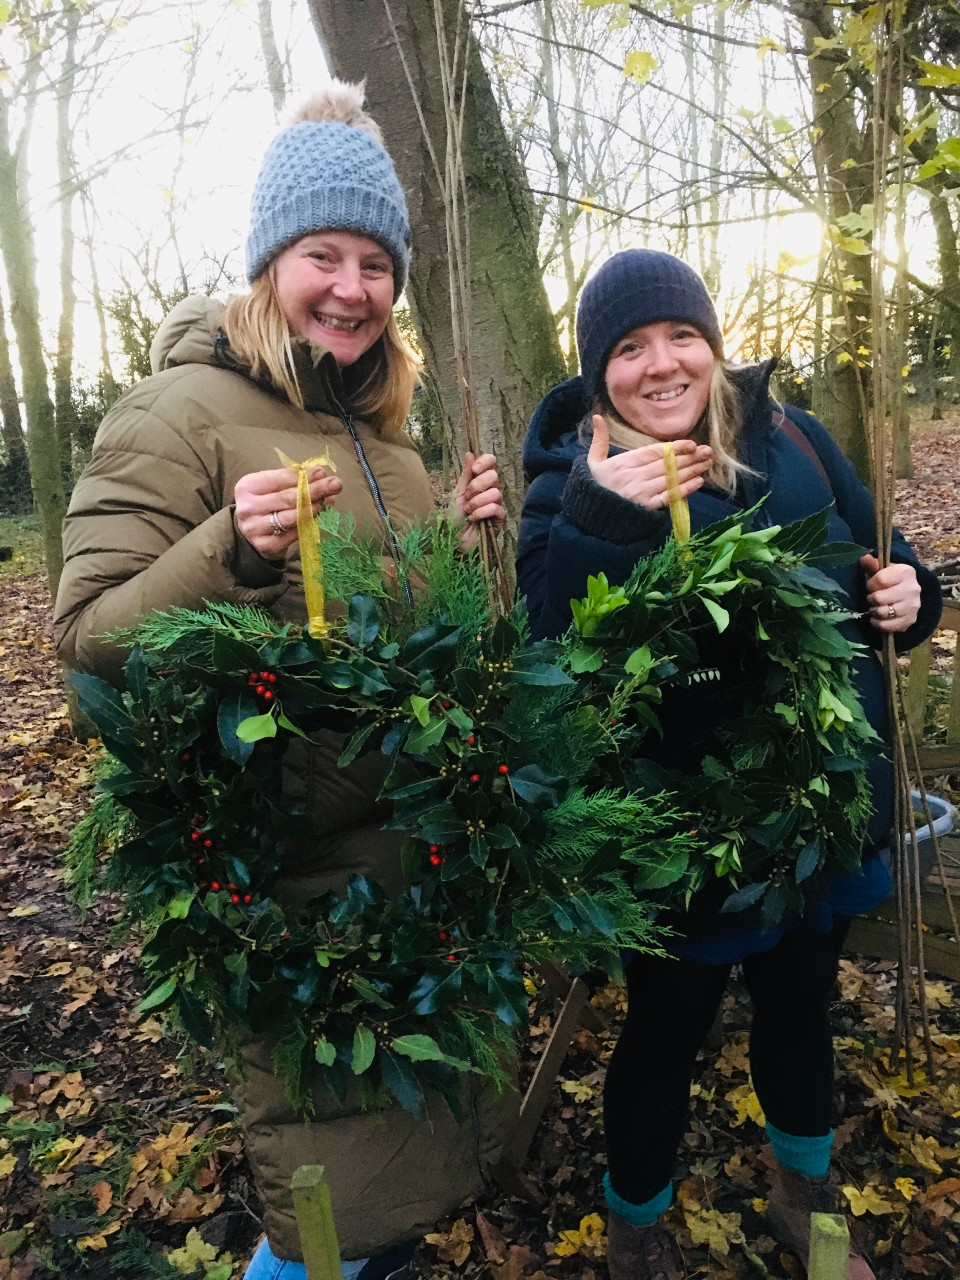 Two women holding Christmas wreath